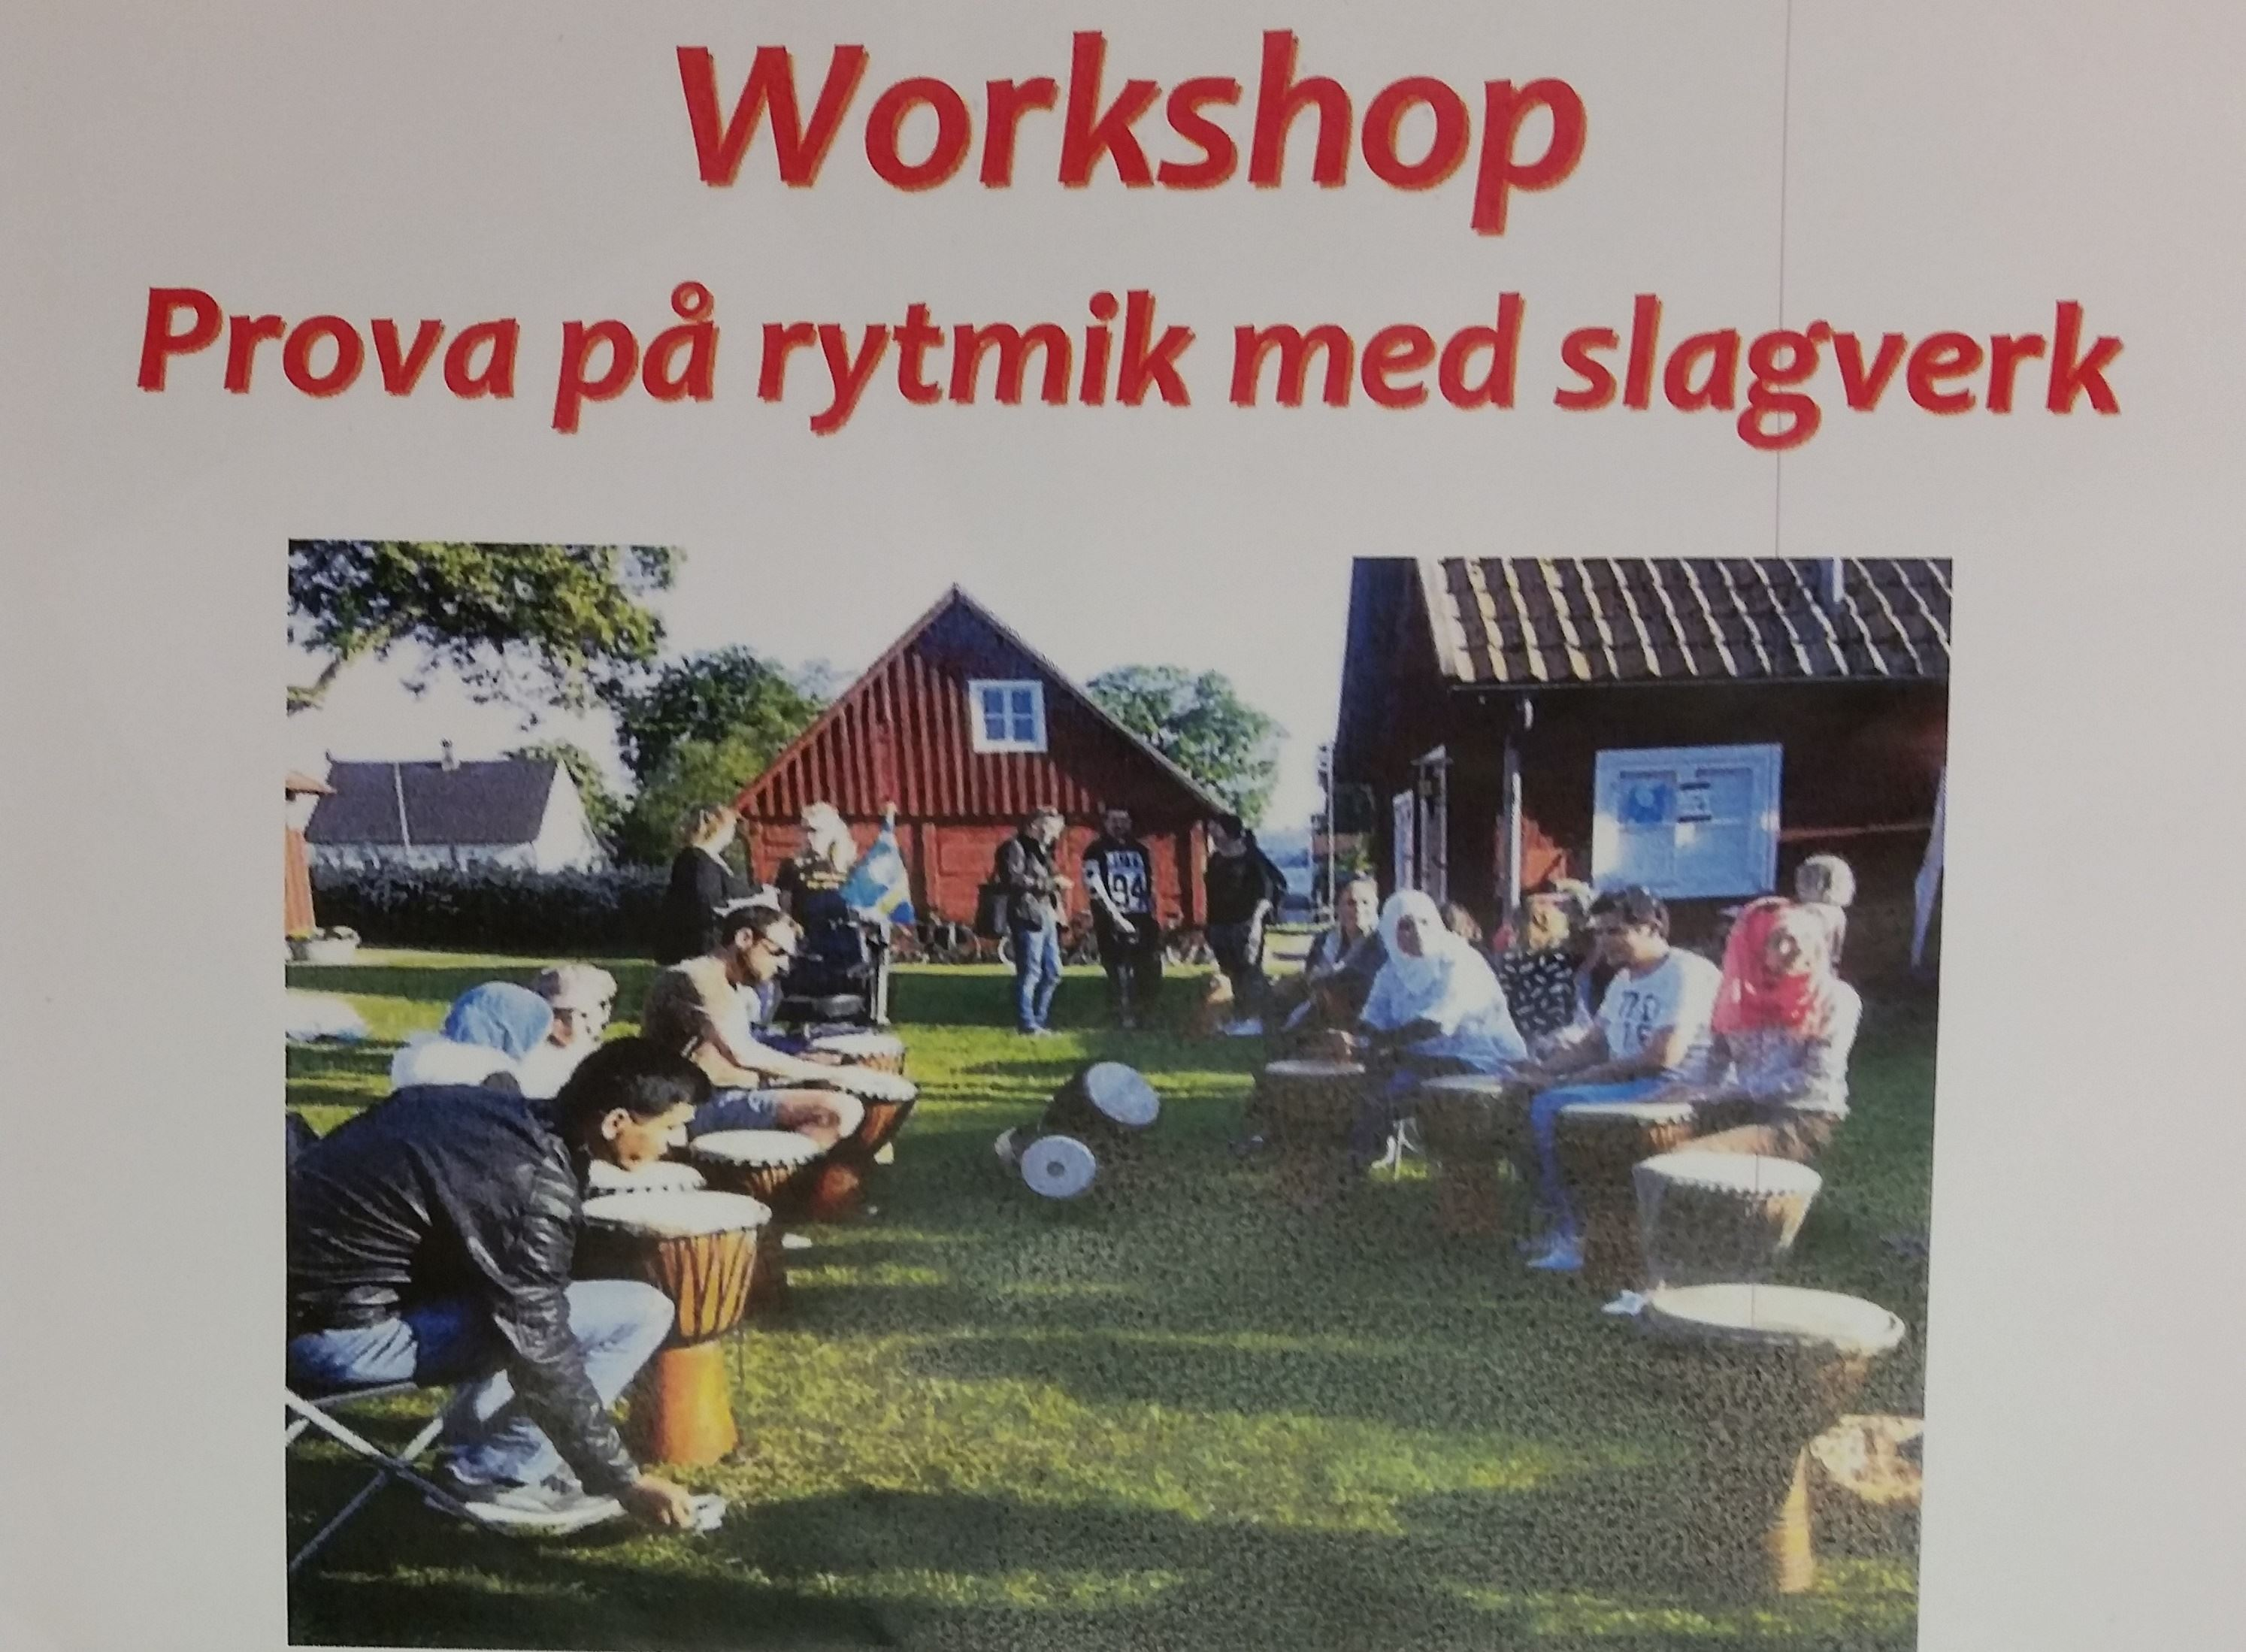 Workshop - Prova på rytmik med slagverk